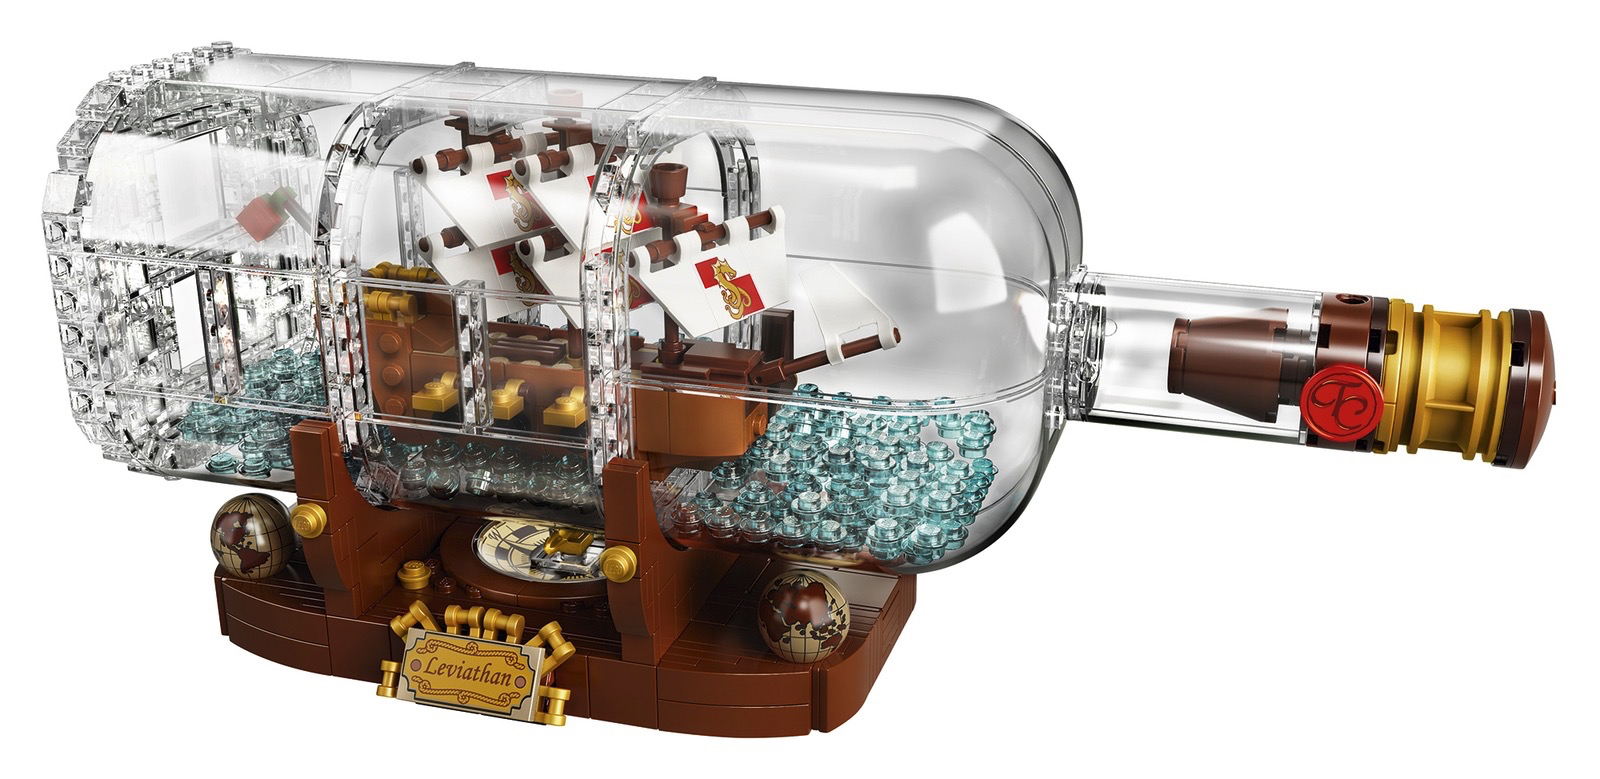 LEGO Ideas Ship in a Bottle - on stand